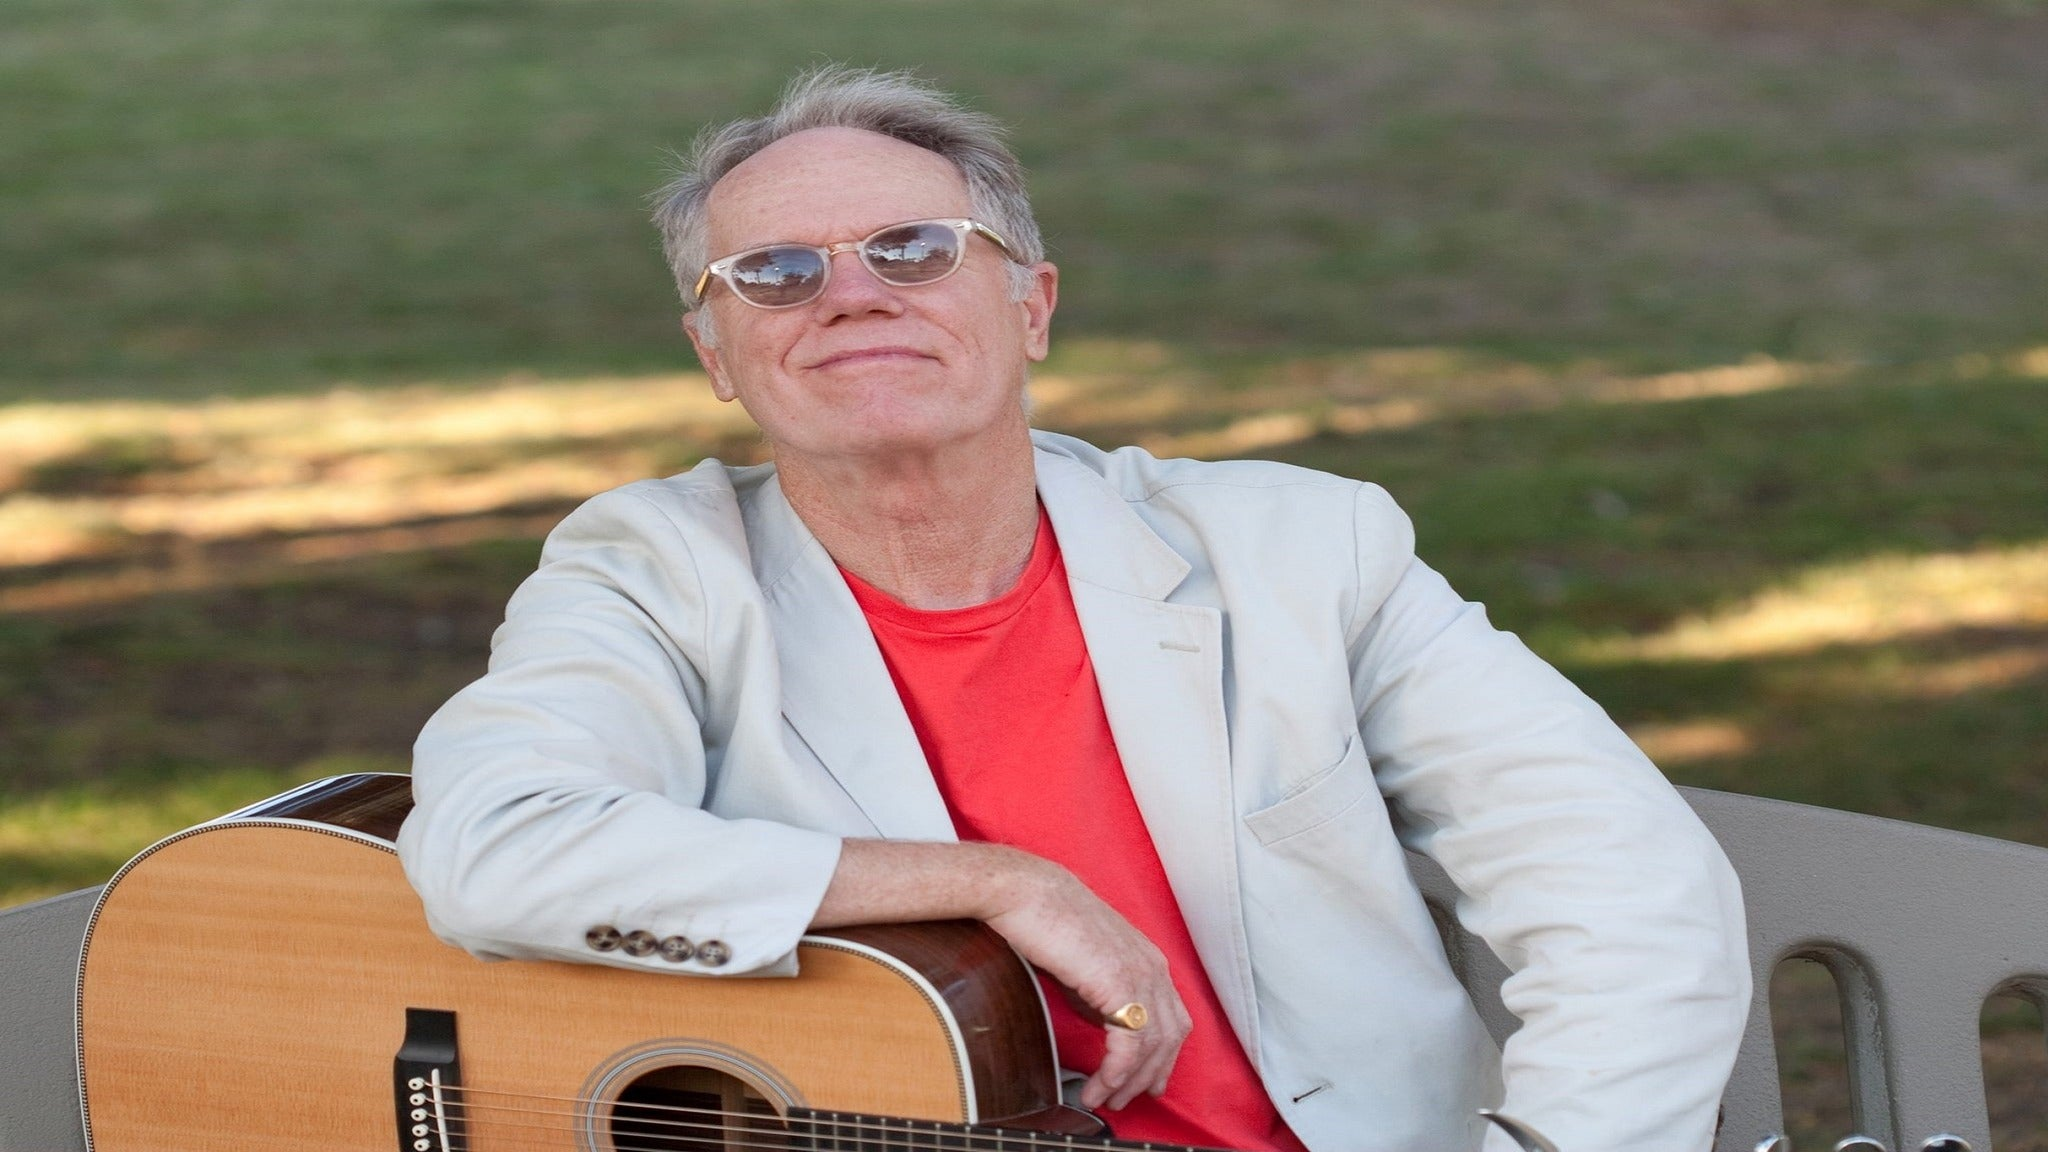 Civic Arts Plaza presents LOUDON WAINWRIGHT III